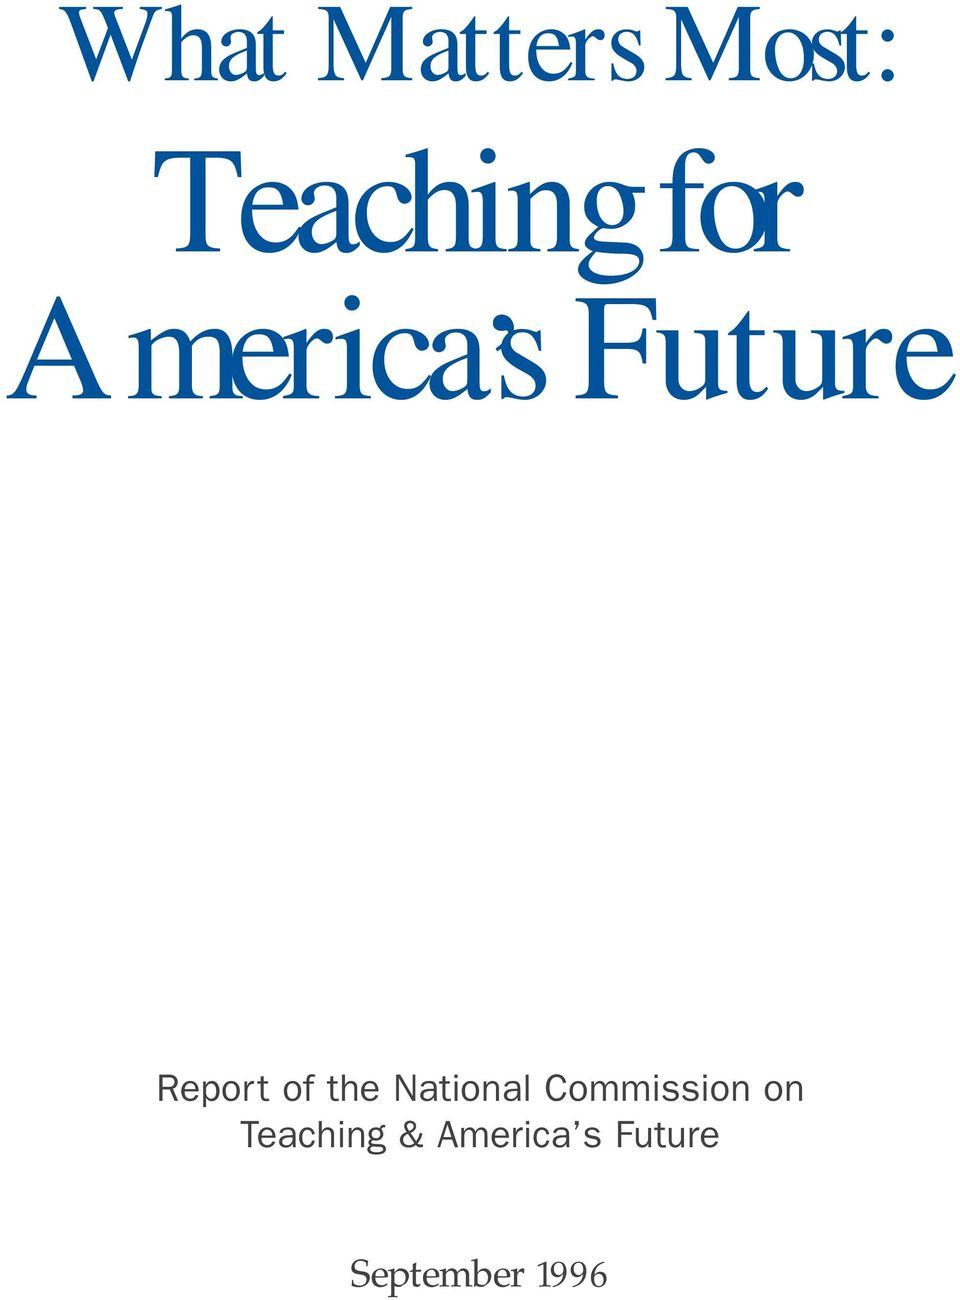 National Commission on Teaching